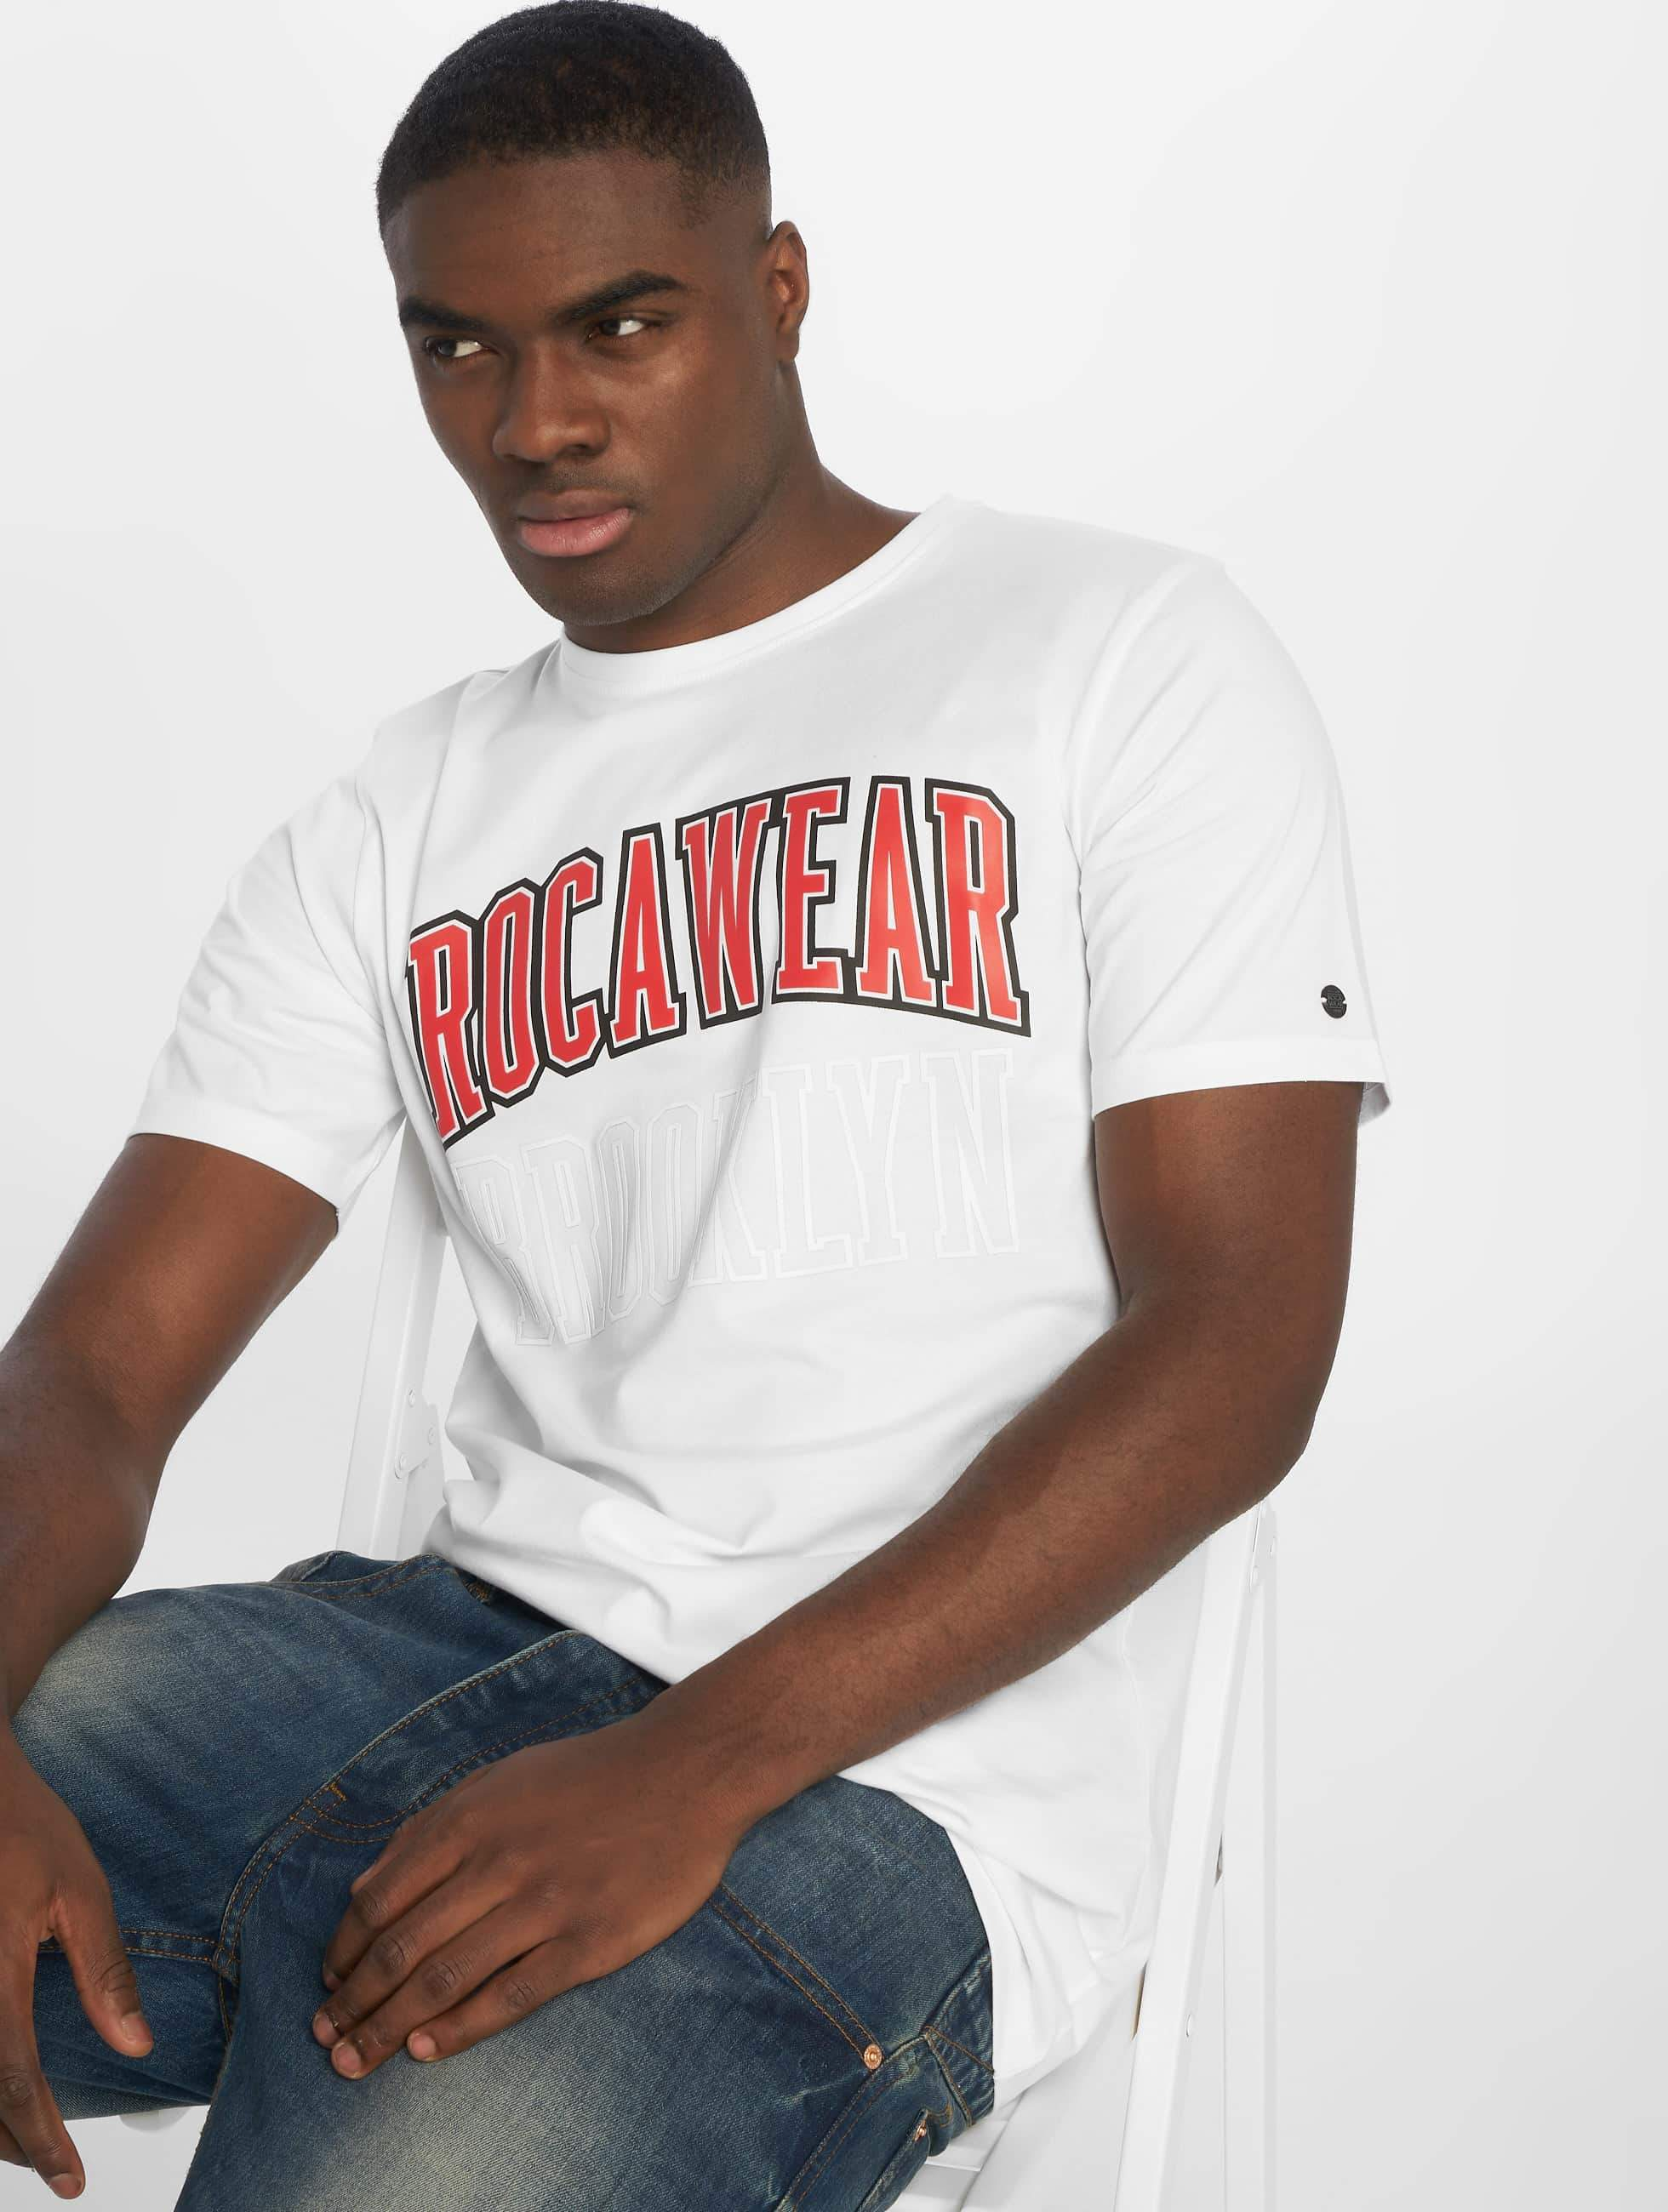 Rocawear / T-Shirt Brooklyn in white L